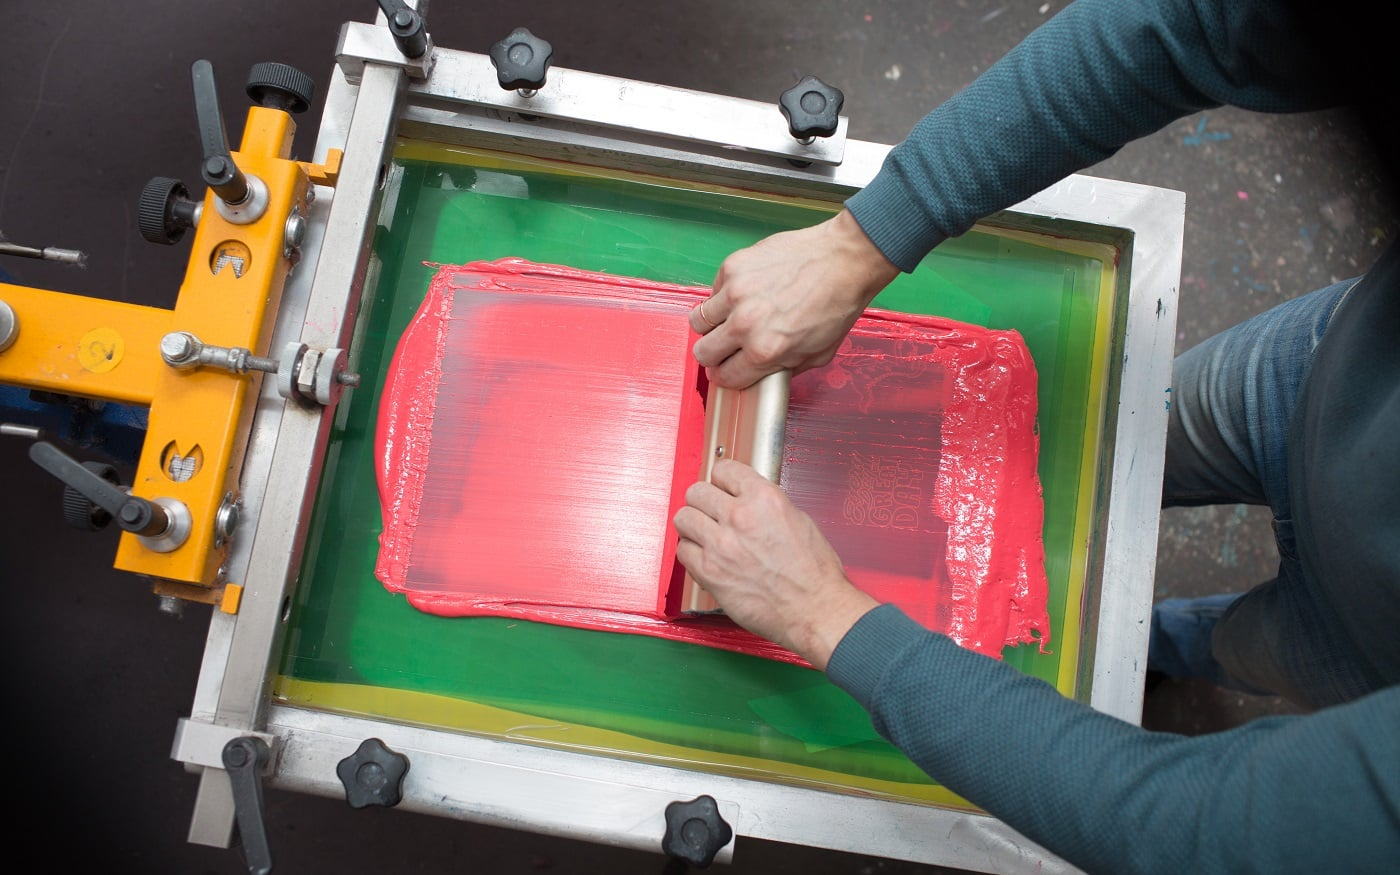 Silk screen printing. Serigraphy. Color paints and fabric. Plastisol paint and squeegee.